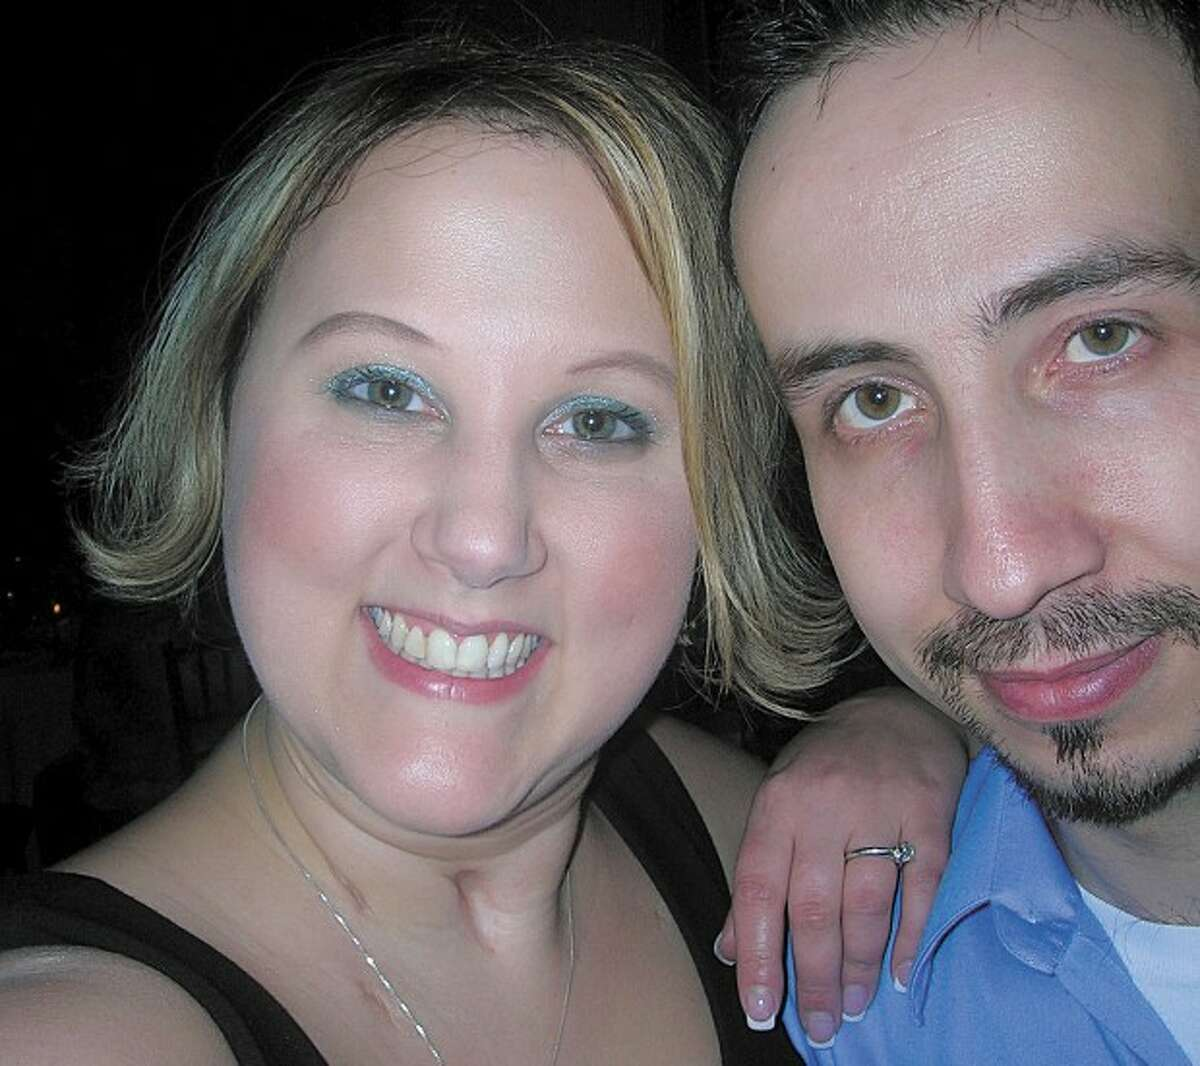 Danielle Waring, a Westhill High School teacher, and Paulo Bernardo will wed at Wilton''s Relay for Life fundraiser on Friday.